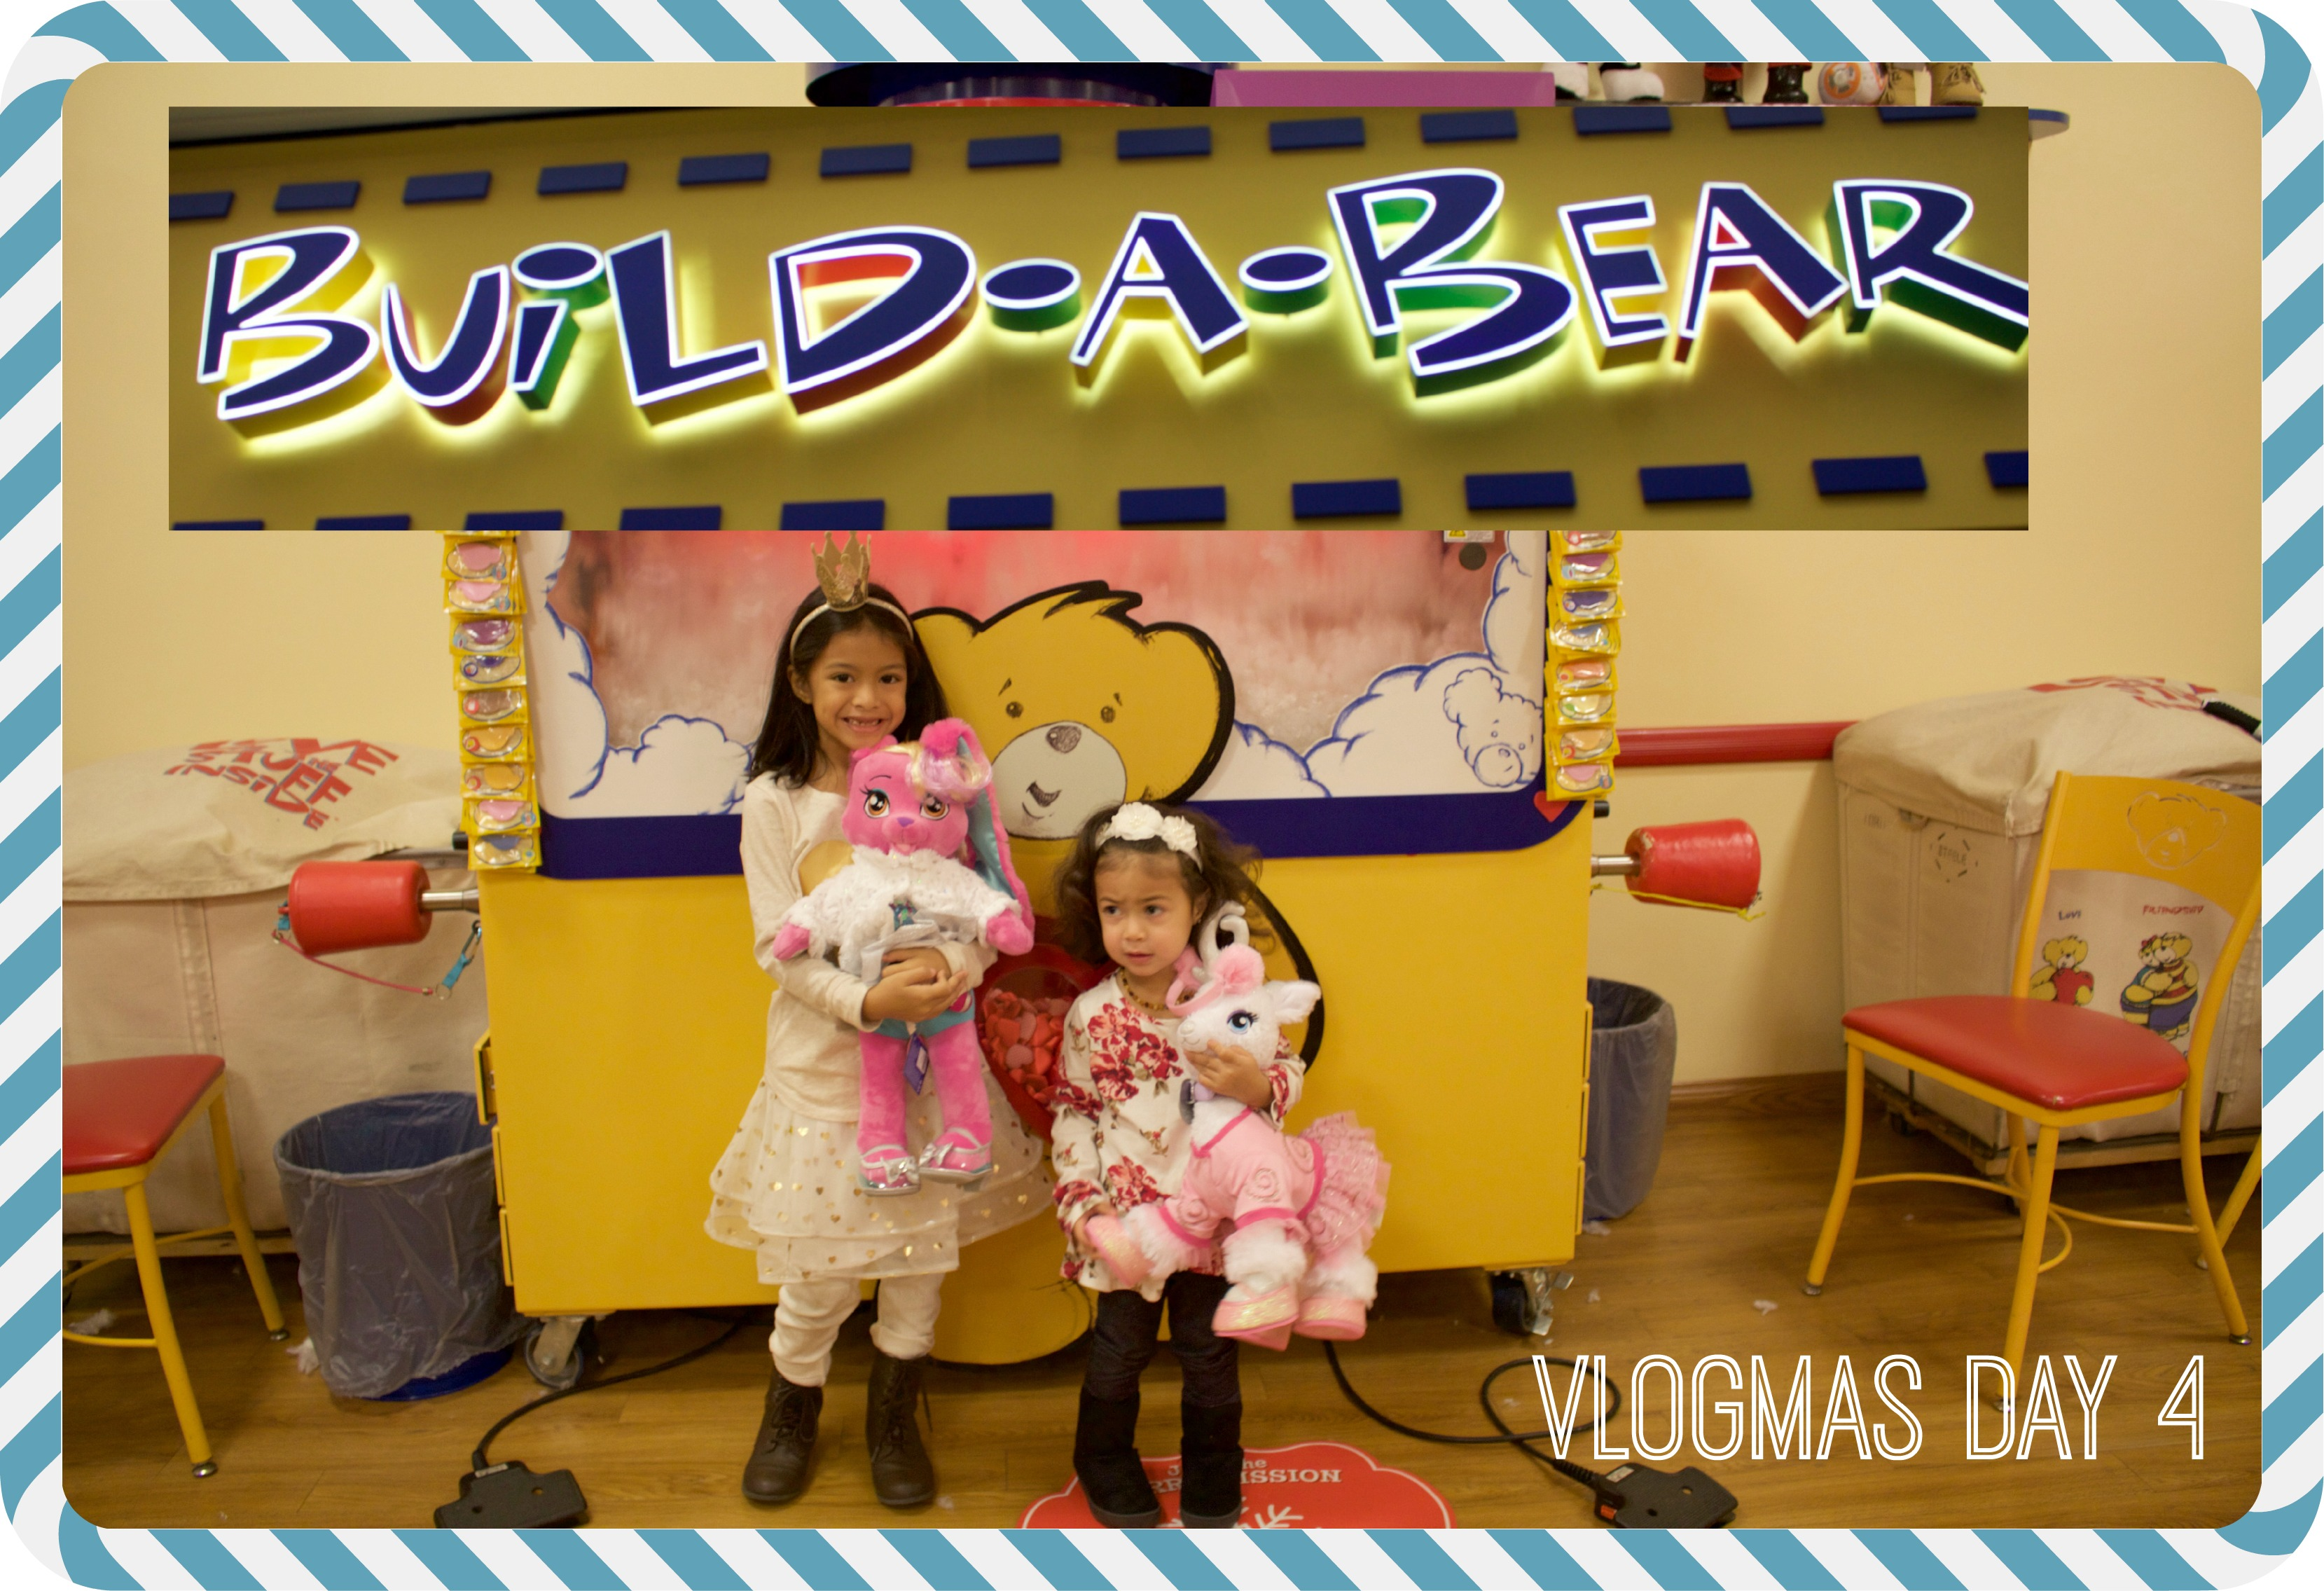 Build-A-Bear Holiday Experience